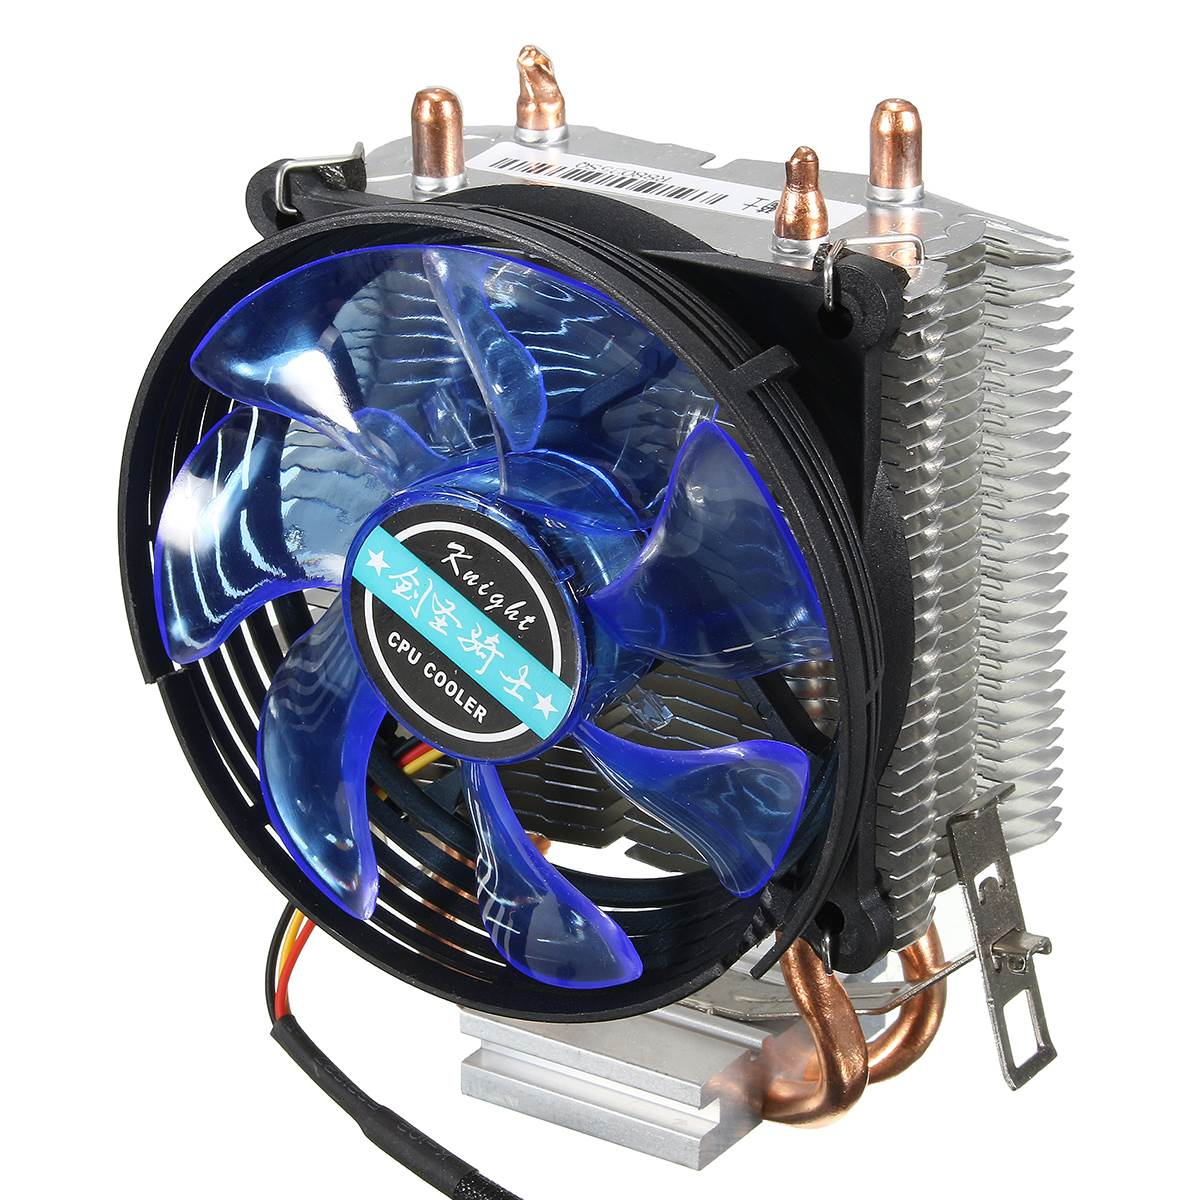 95x95x25mm LED Cooler Cpu Fan Heatsink Copper for Intel LGA775/1156/1155 for AMD AM2/AM2+/AM3 new pc cpu cooler cooling fan heatsink for intel lga775 1155 amd am2 am3 a97